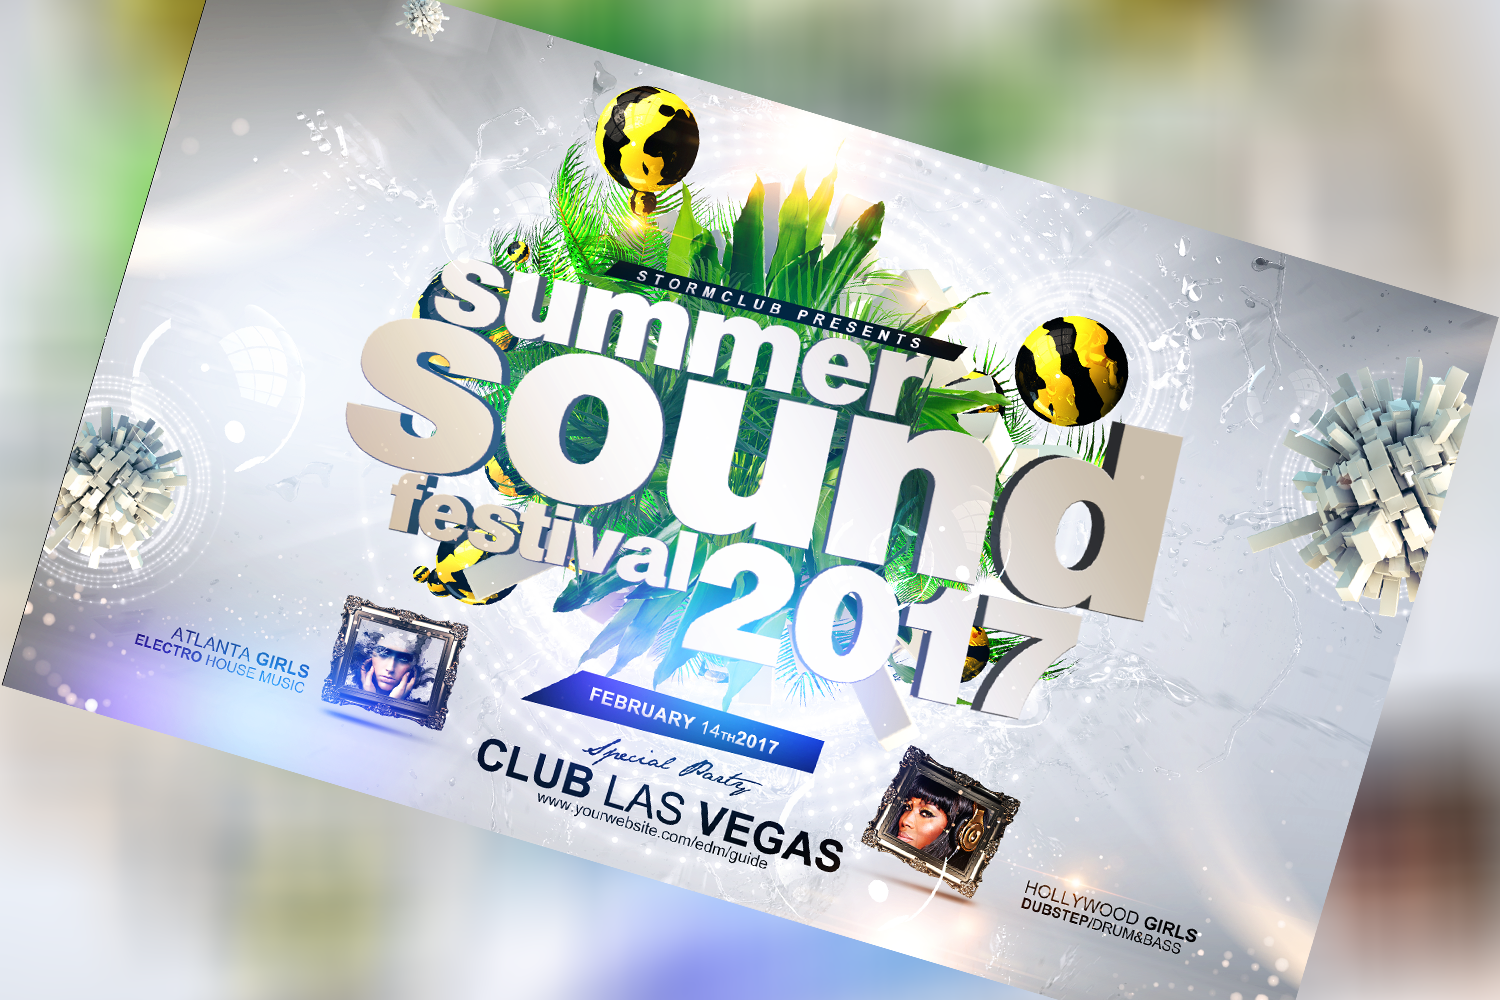 Summer Sound Festival Flyer Template example image 1